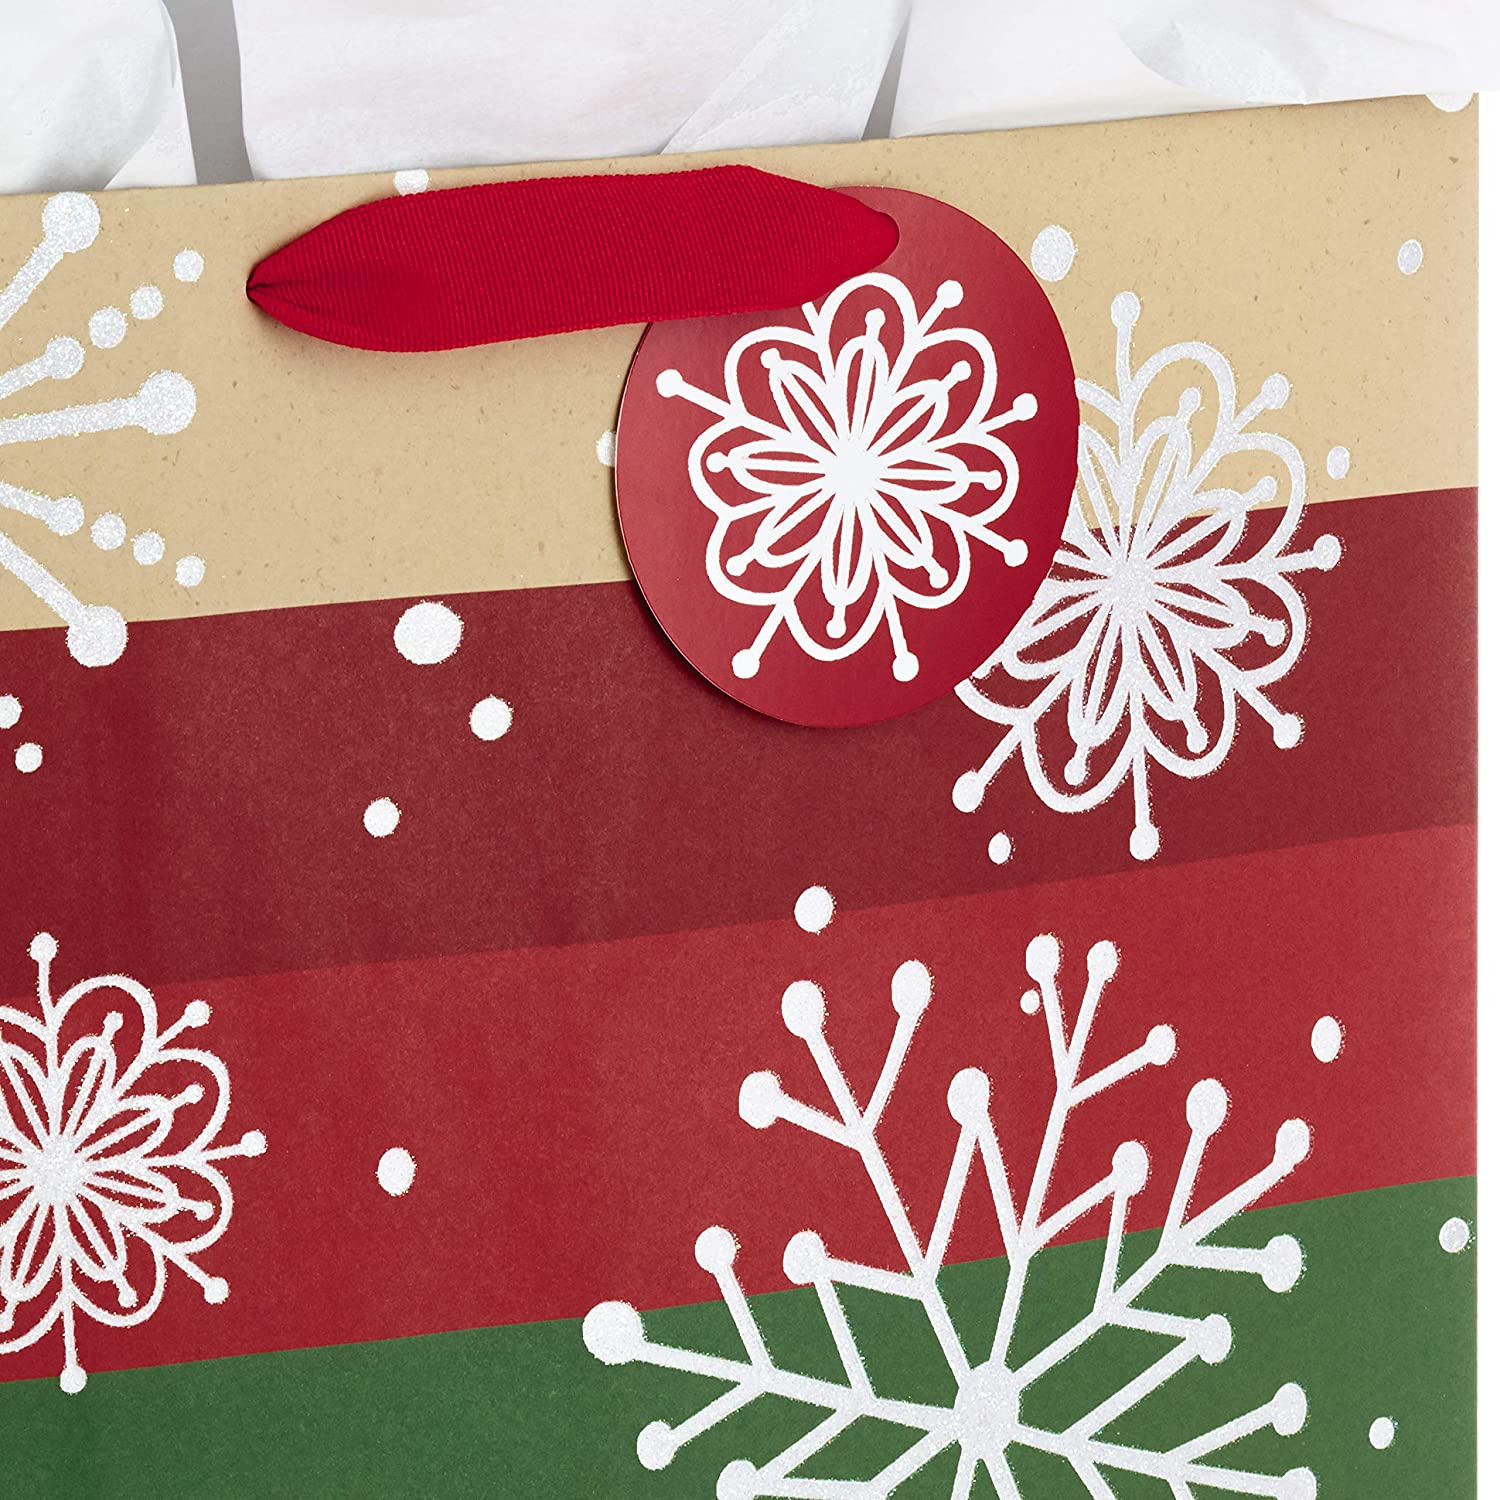 Hallmark 15 Extra Large Christmas Gift Bag with Tissue Paper Black Buffalo Plaid with Red Bow